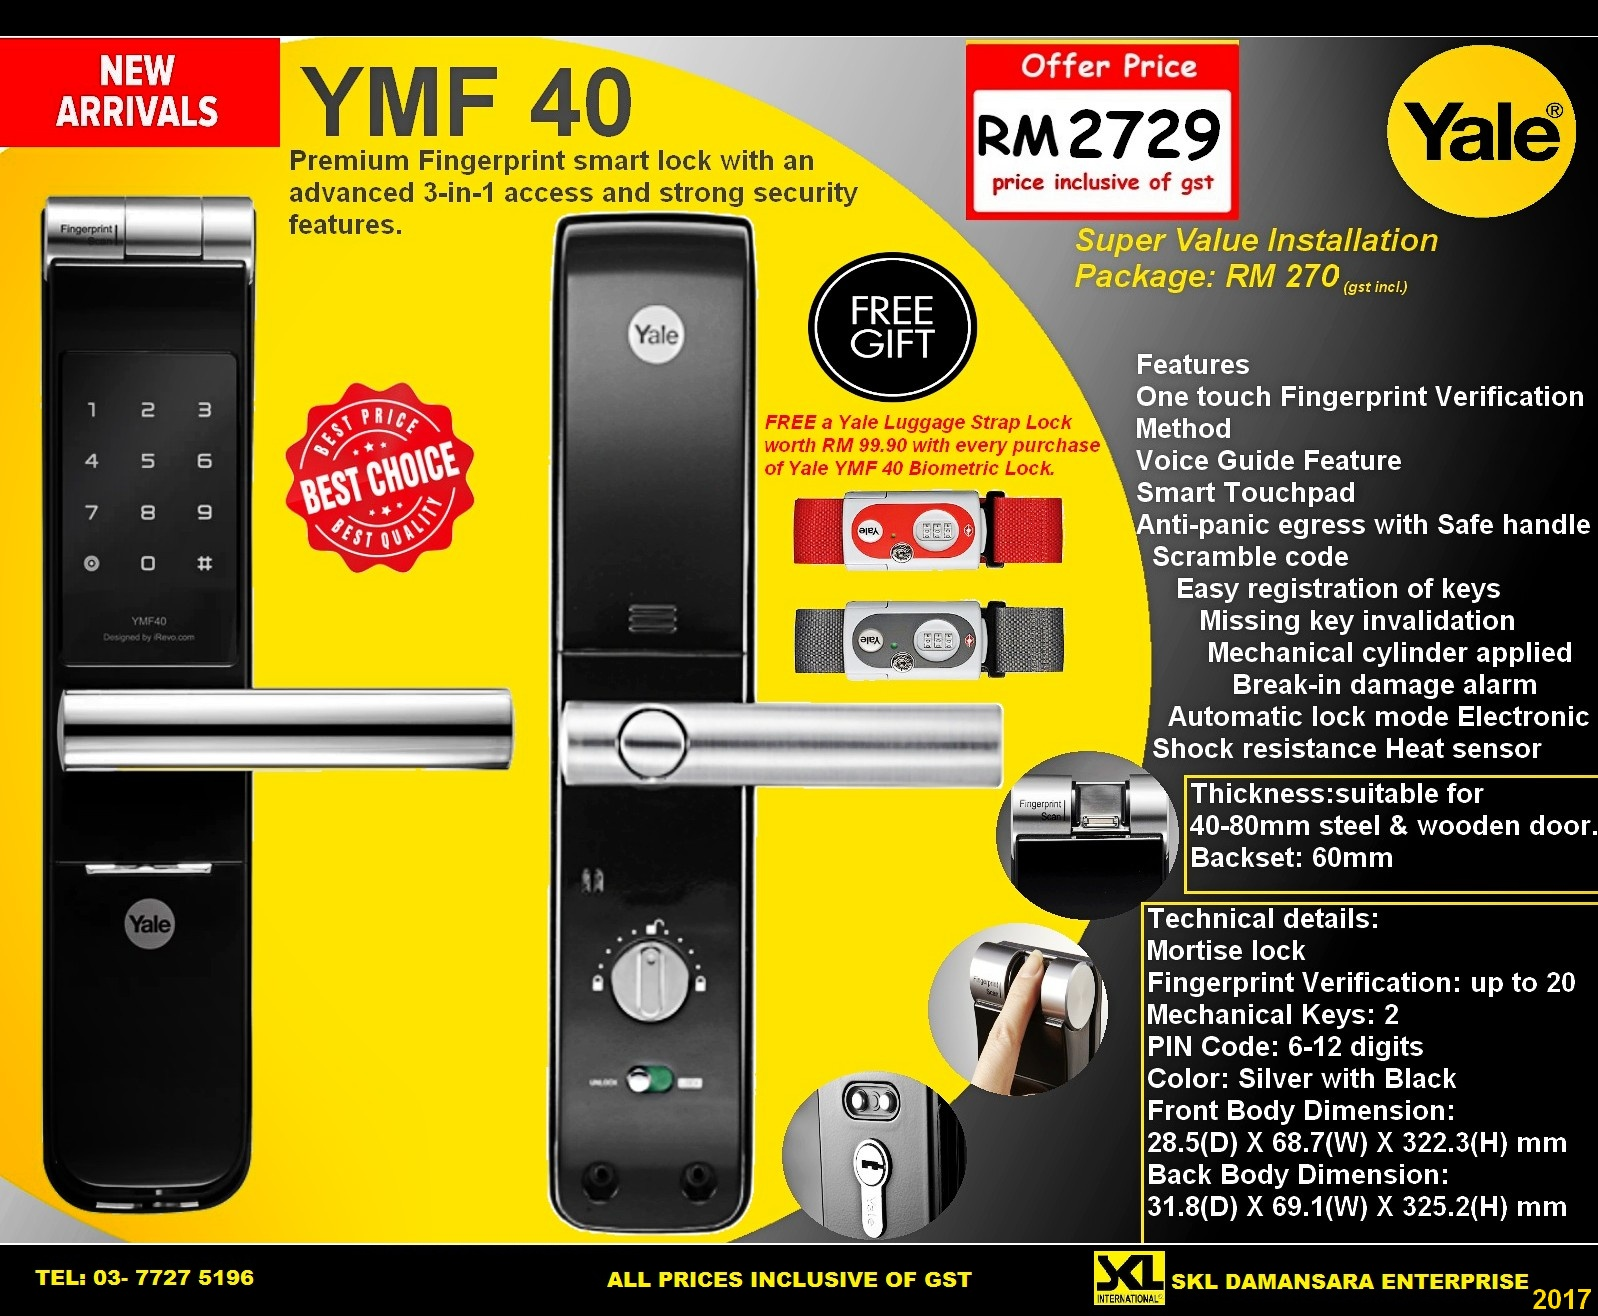 New Arrival!! Yale YMF 40 Biometric Digital Door Lock now at RM 2729 Only!!